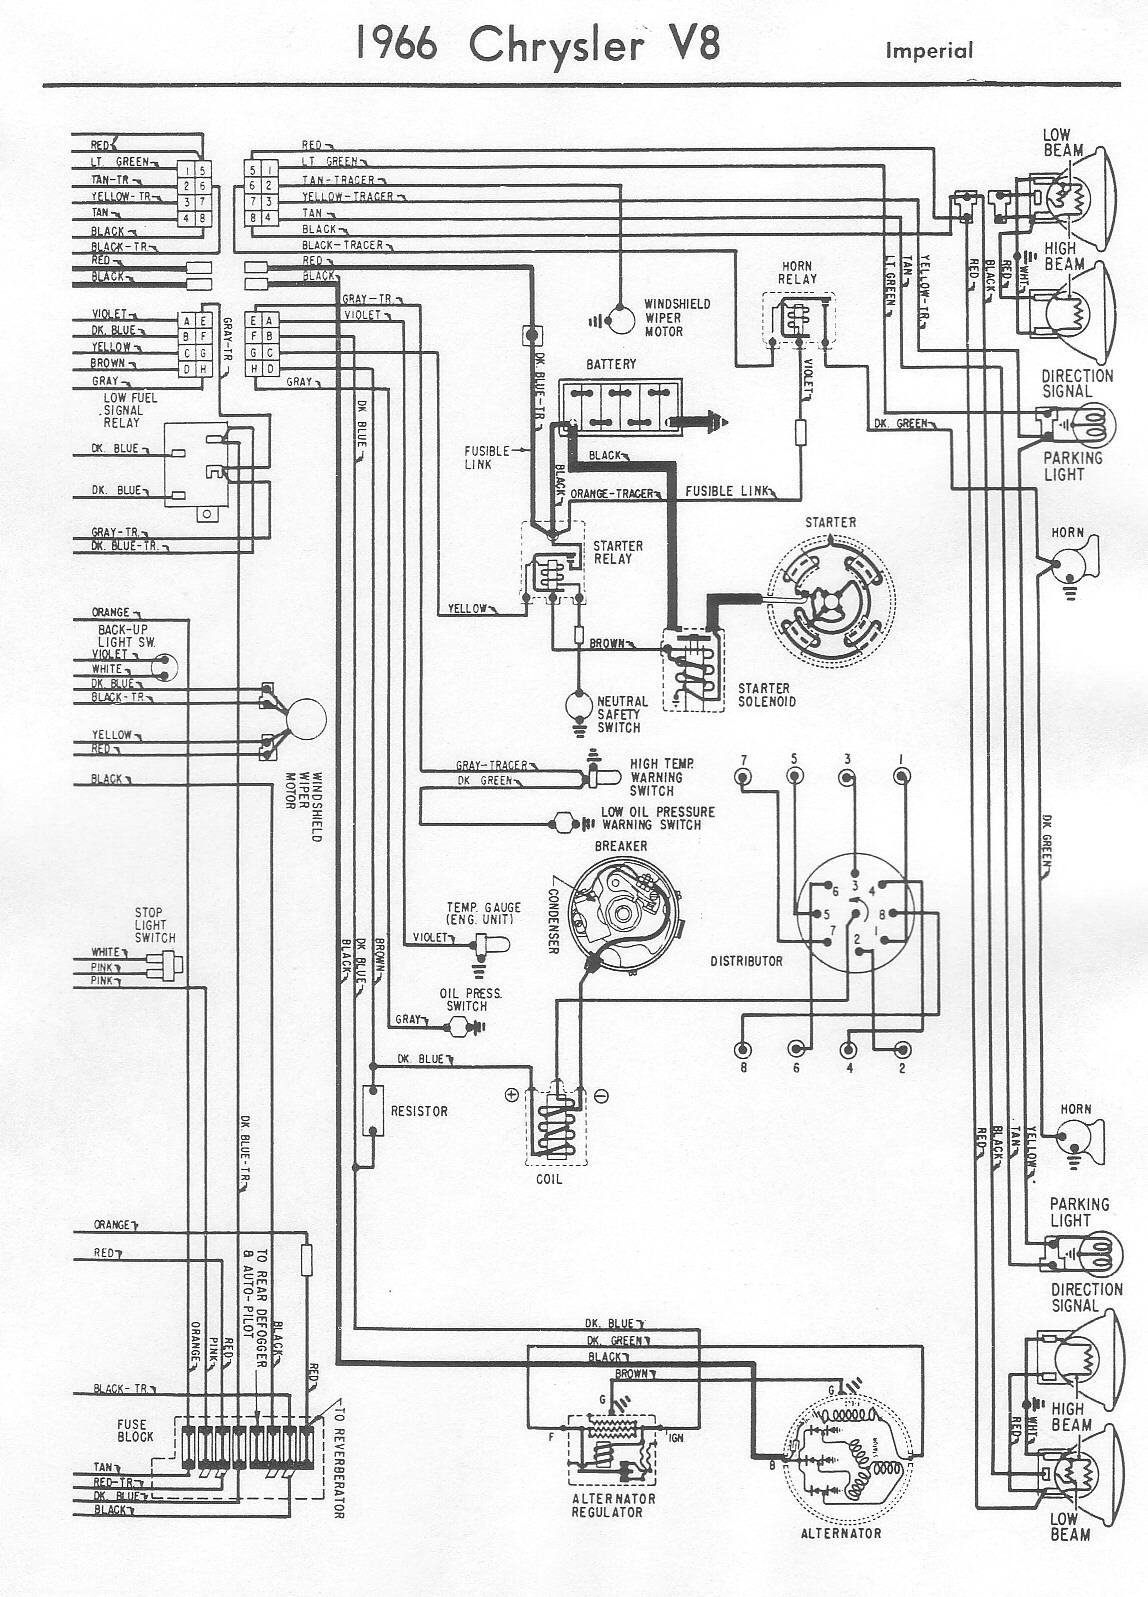 Wiring Diagram 1973 Chrysler Imperial on el falcon wiring diagram